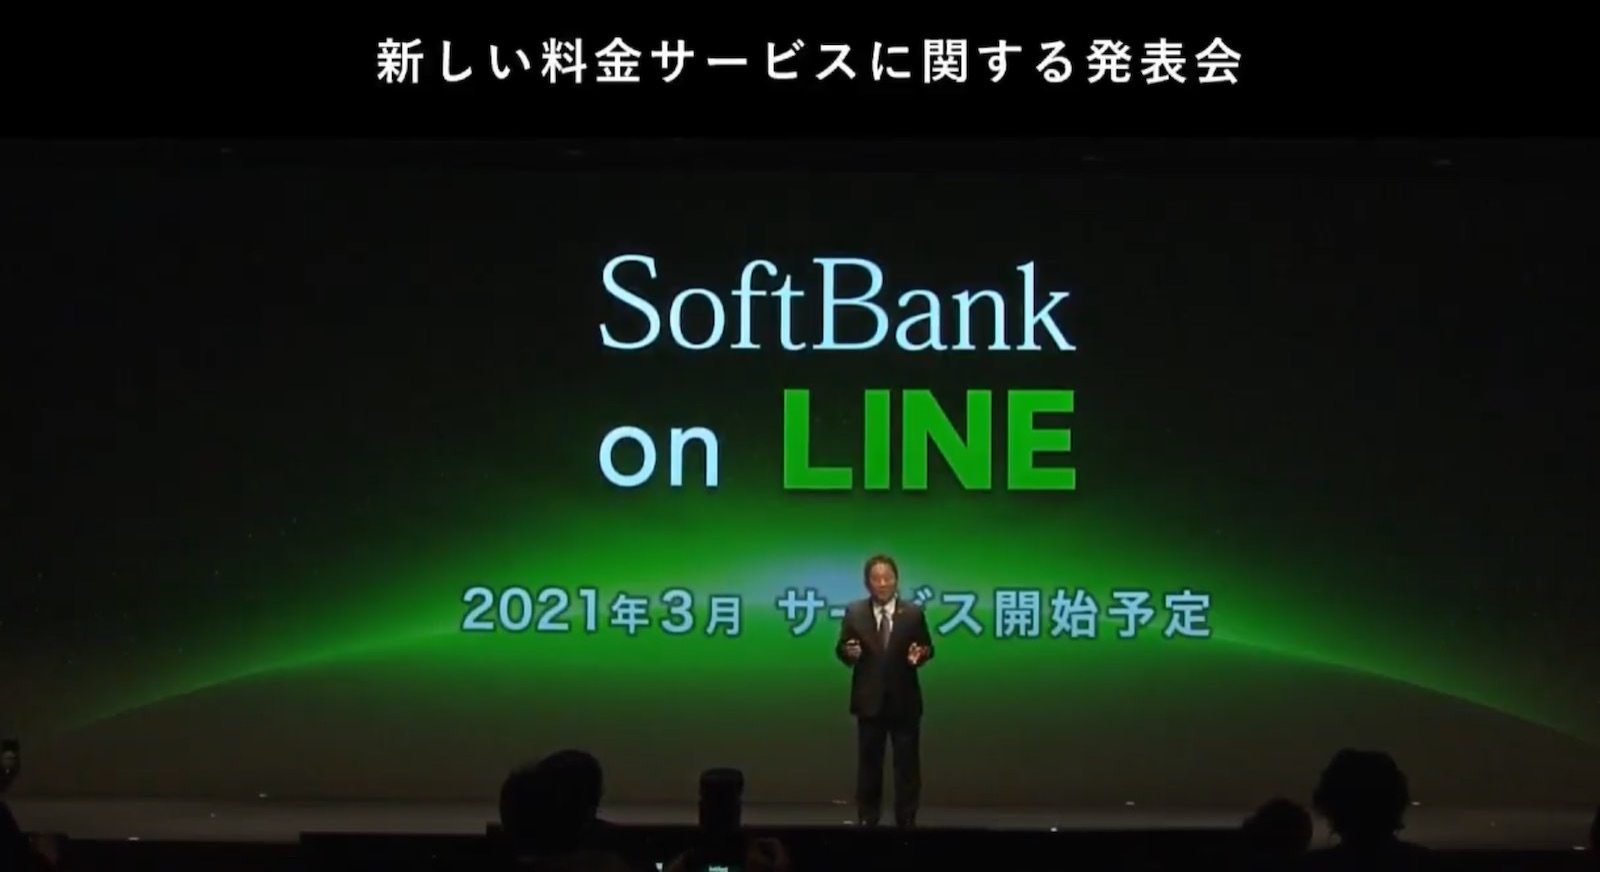 Softbank on line 2